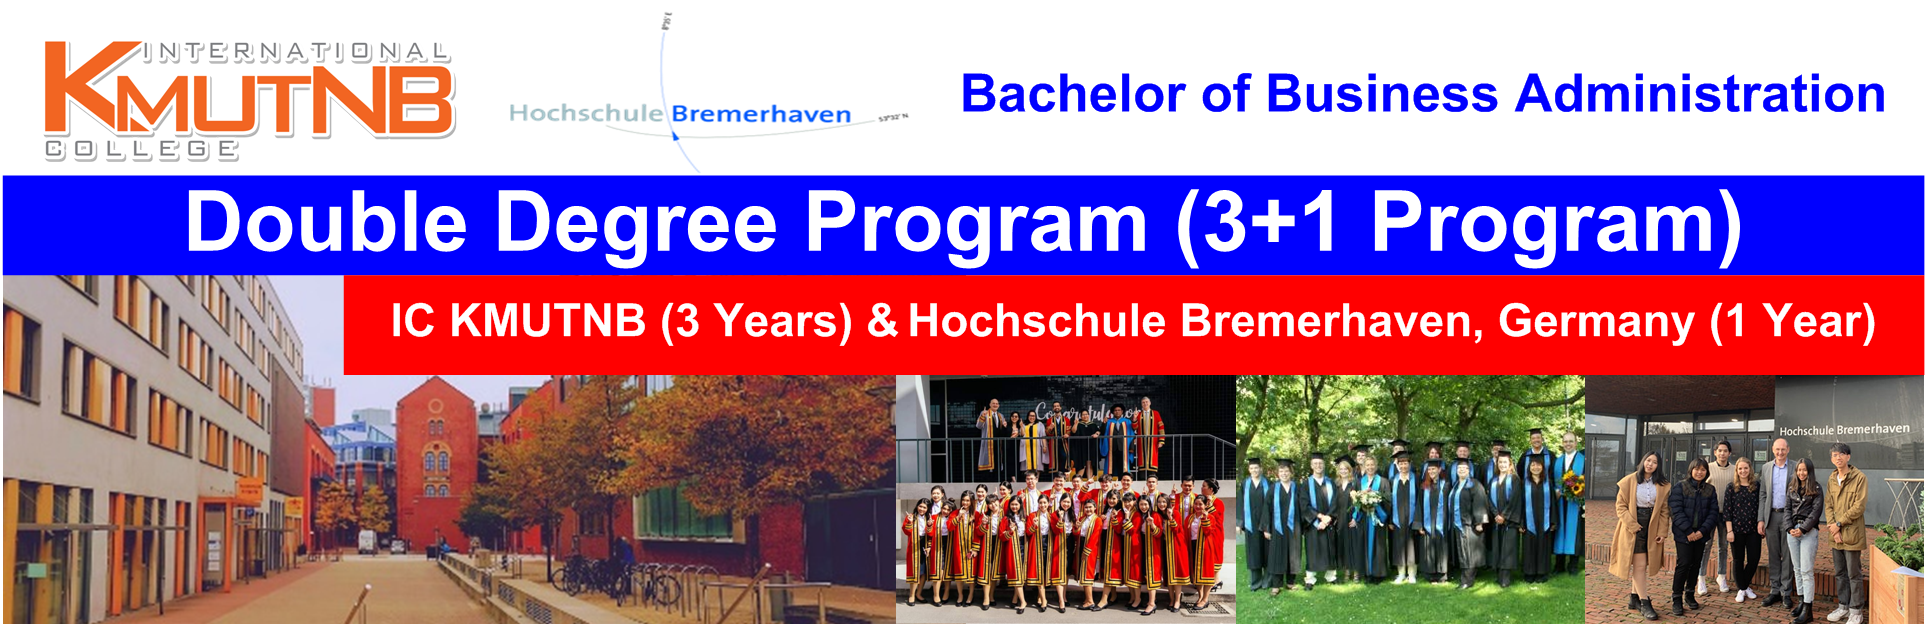 Double Degree Program (3+1 Program)